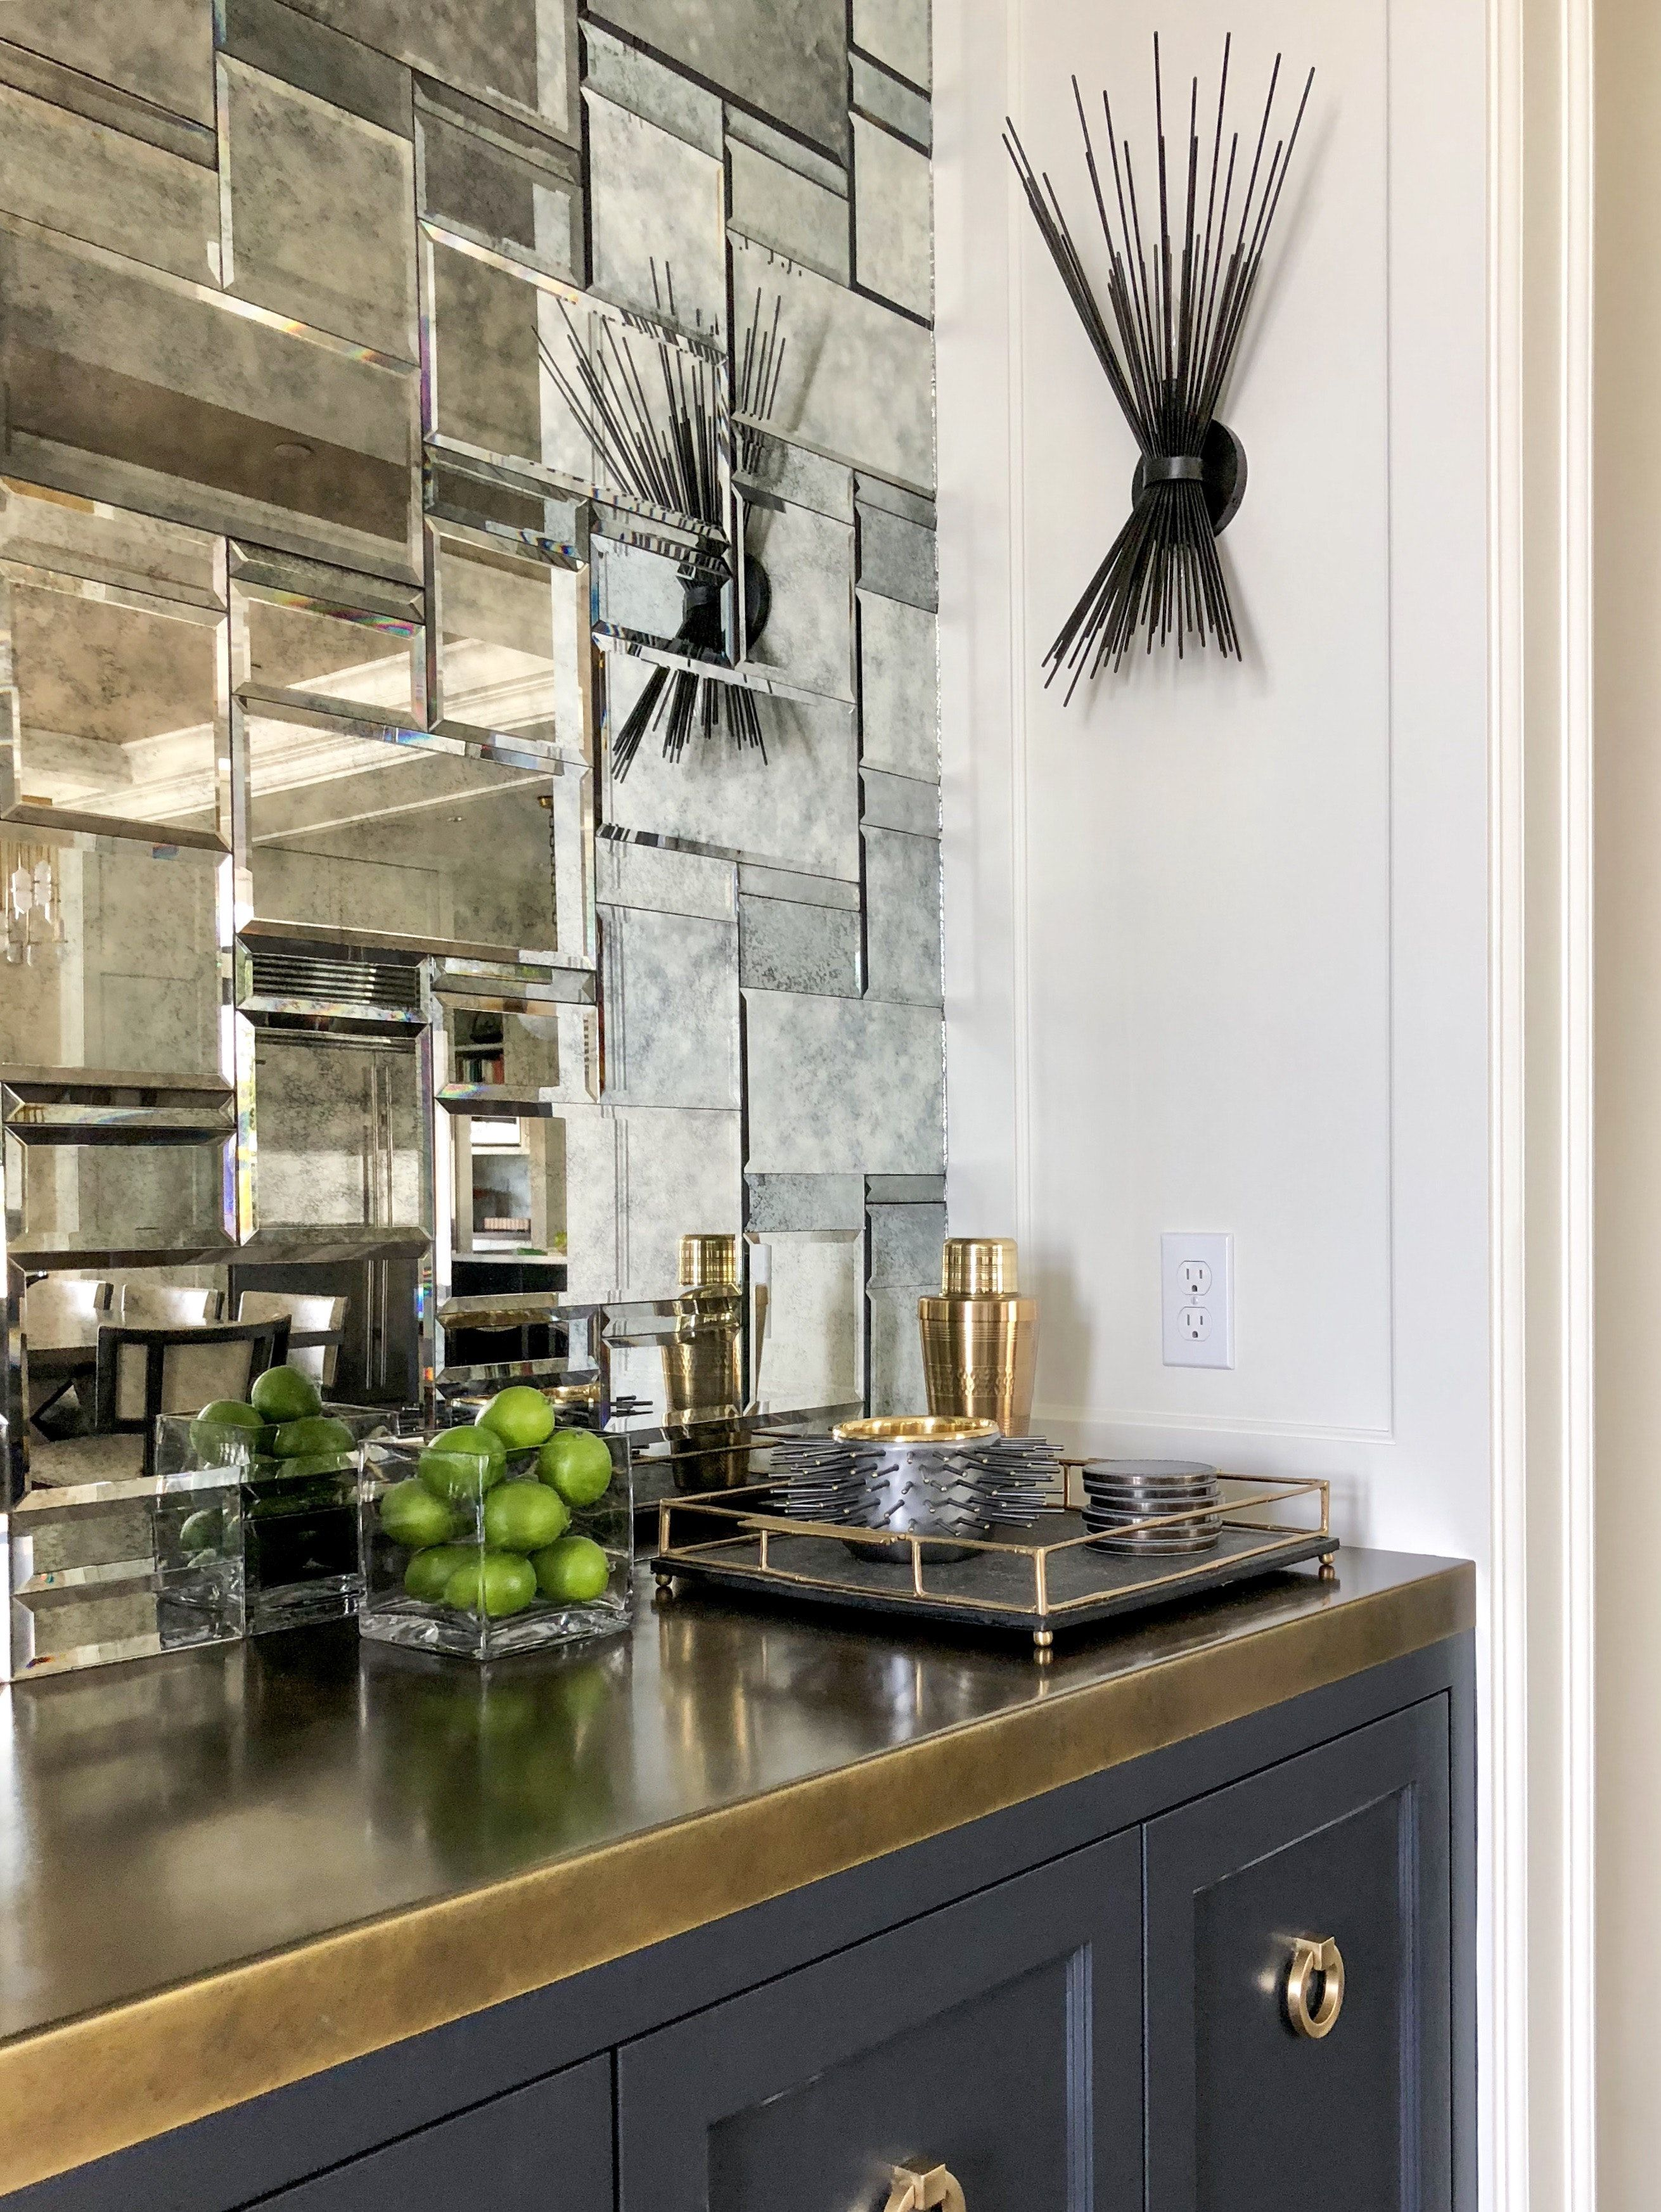 Mercer Island Dry Bar With Brass Countertop And Mosaic Mirror Tile Backsplash Home Bar Designs Mirror Tile Backsplash Bar Interior